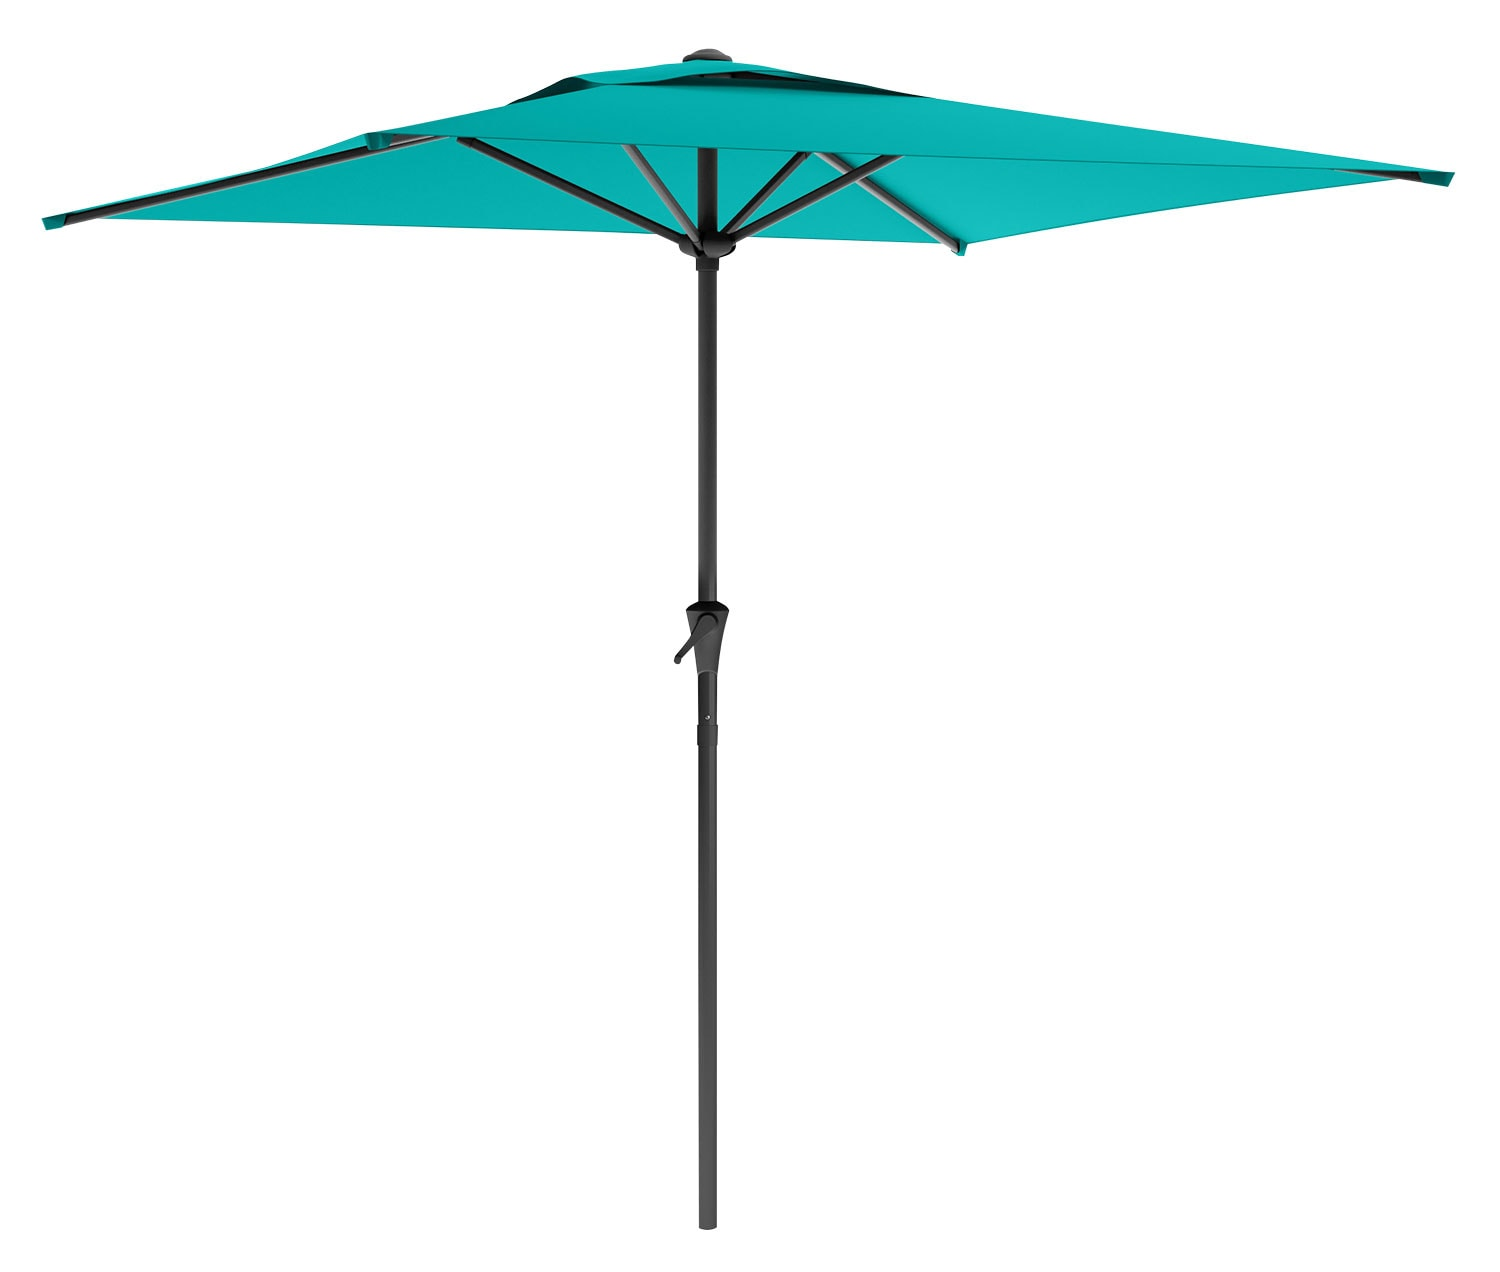 Square Patio Umbrella – Turquoise Blue